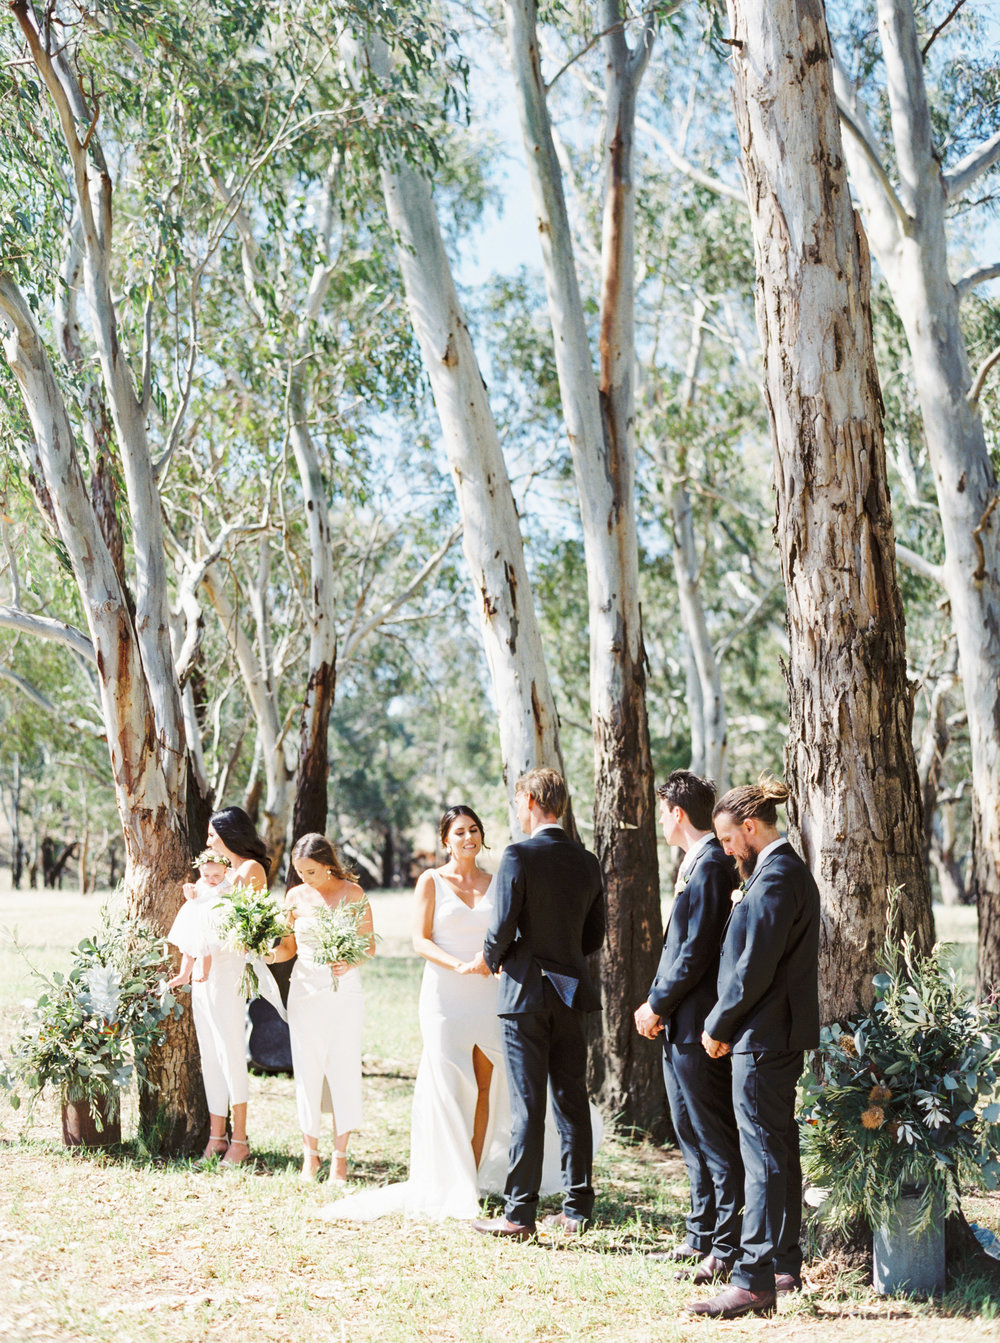 00029- Olive Tree Mediterranean Wedding in Mudgee NSW Australia Fine Art Film Wedding Lifestyle Photographer Sheri McMahon_.jpg